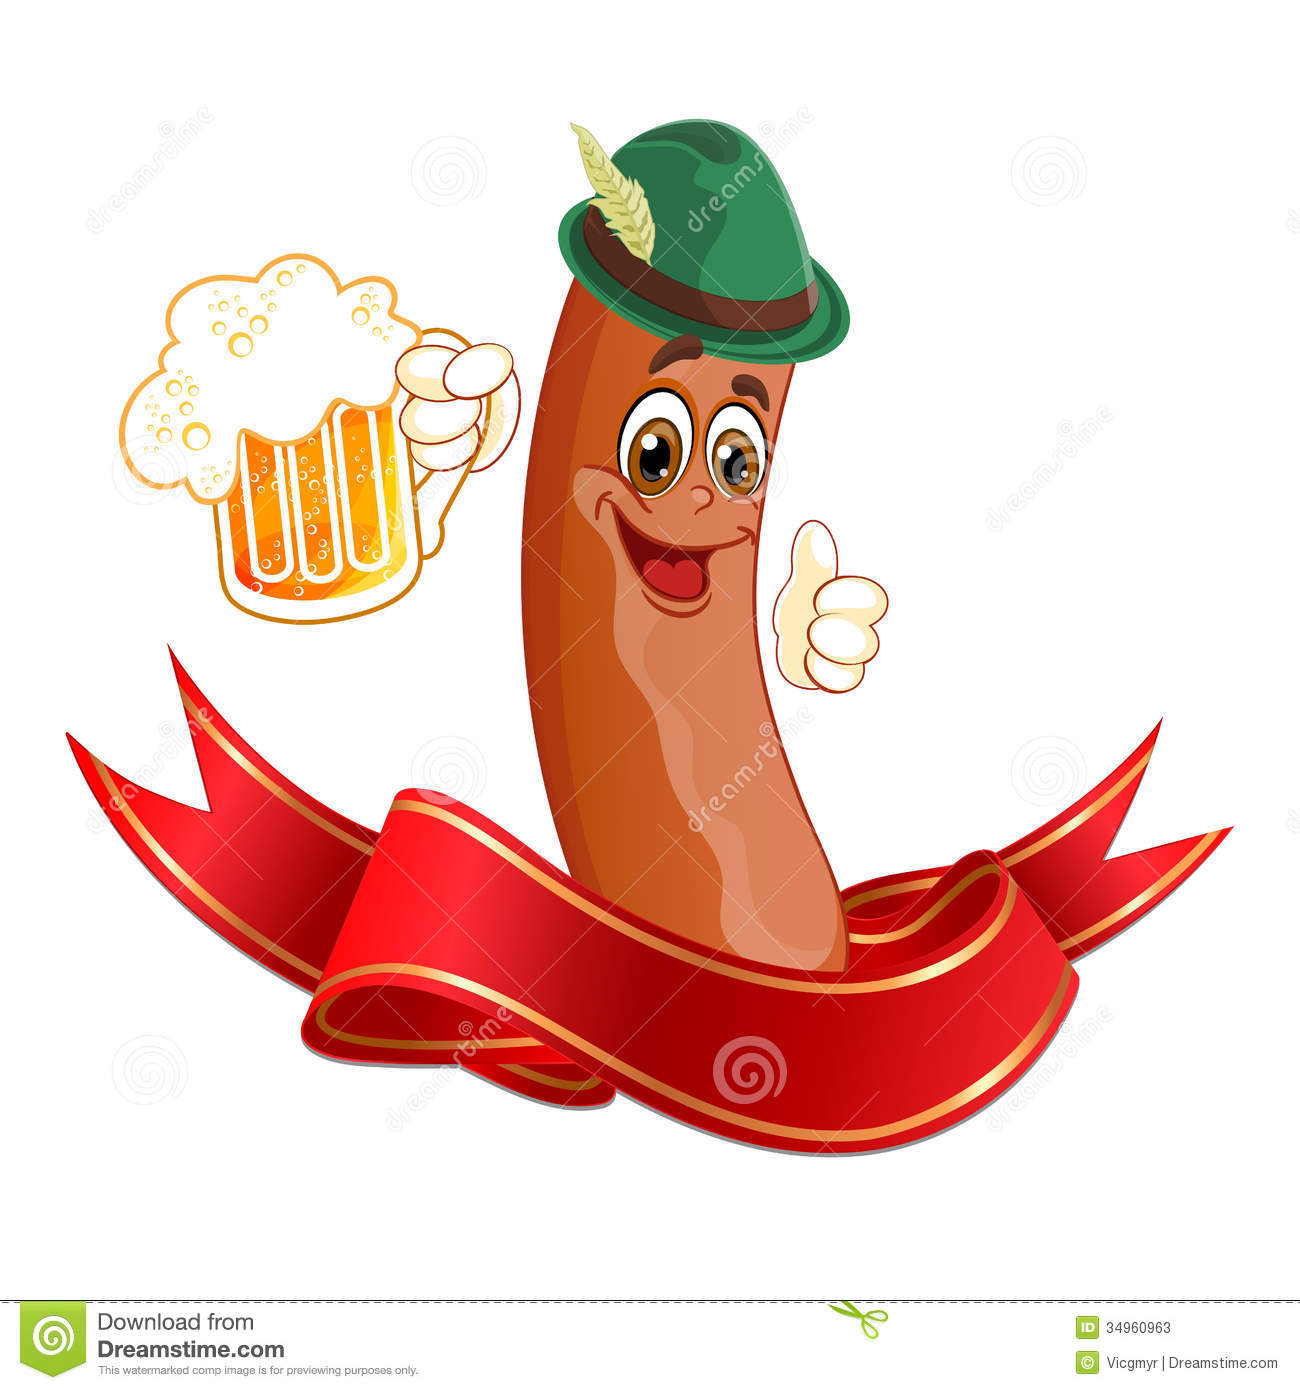 Displaying Images For - Italian Sausage Clip Art...